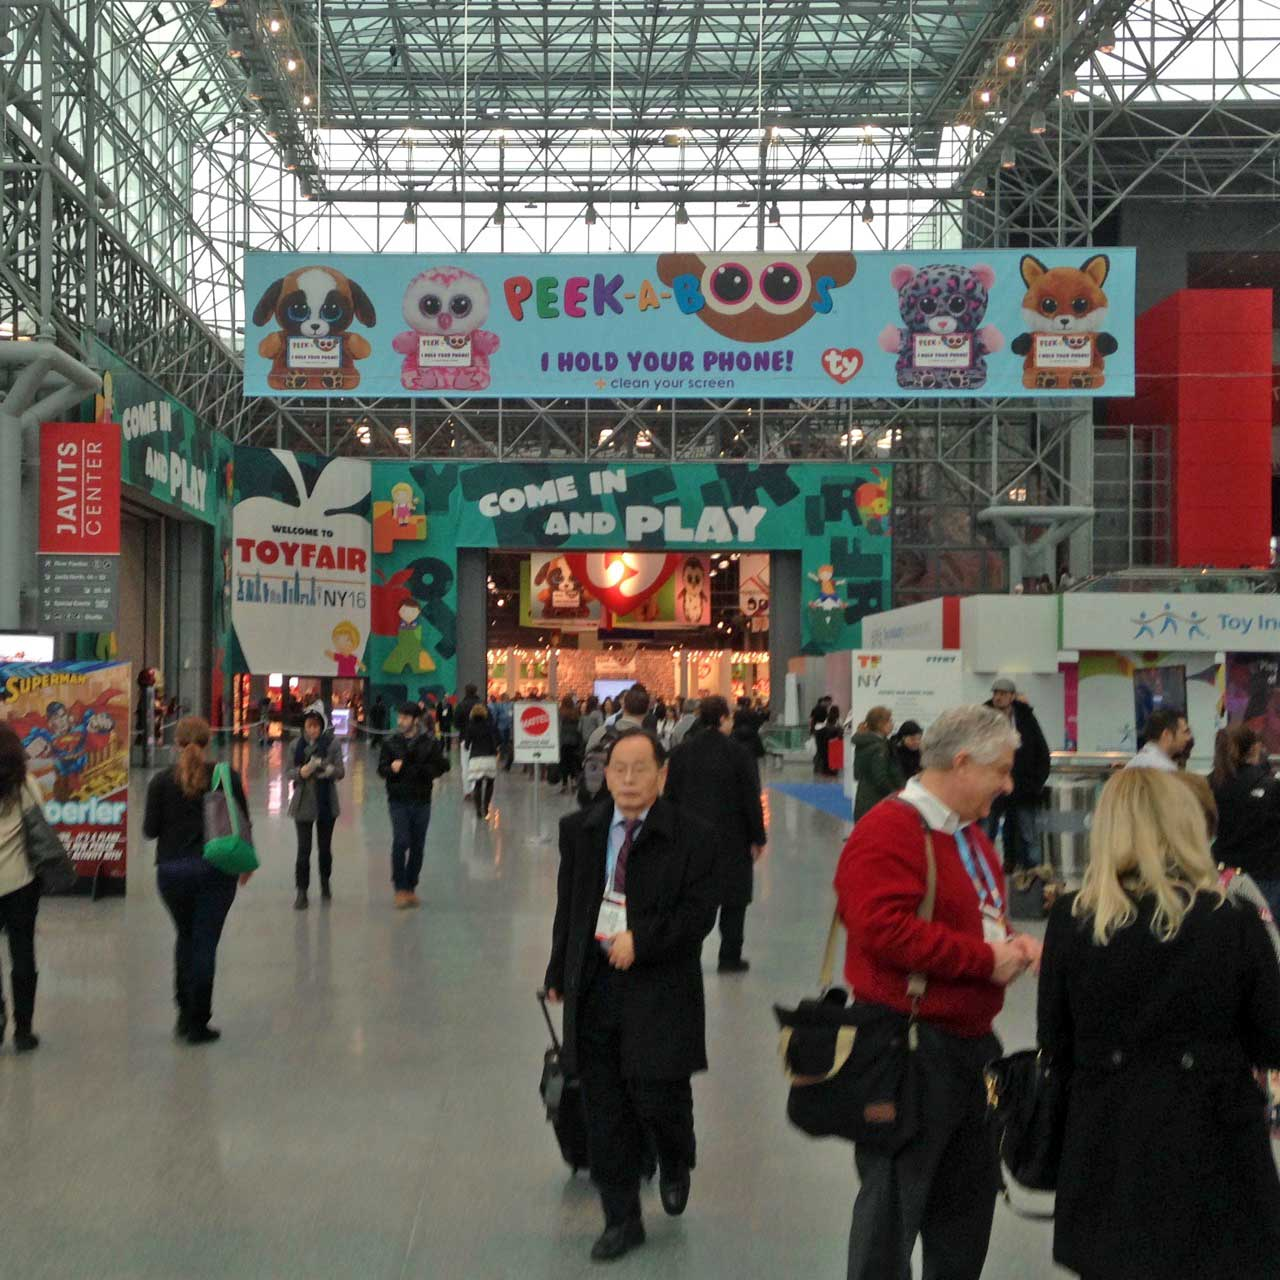 The main entrance area for the toy fair at the Javitz Center